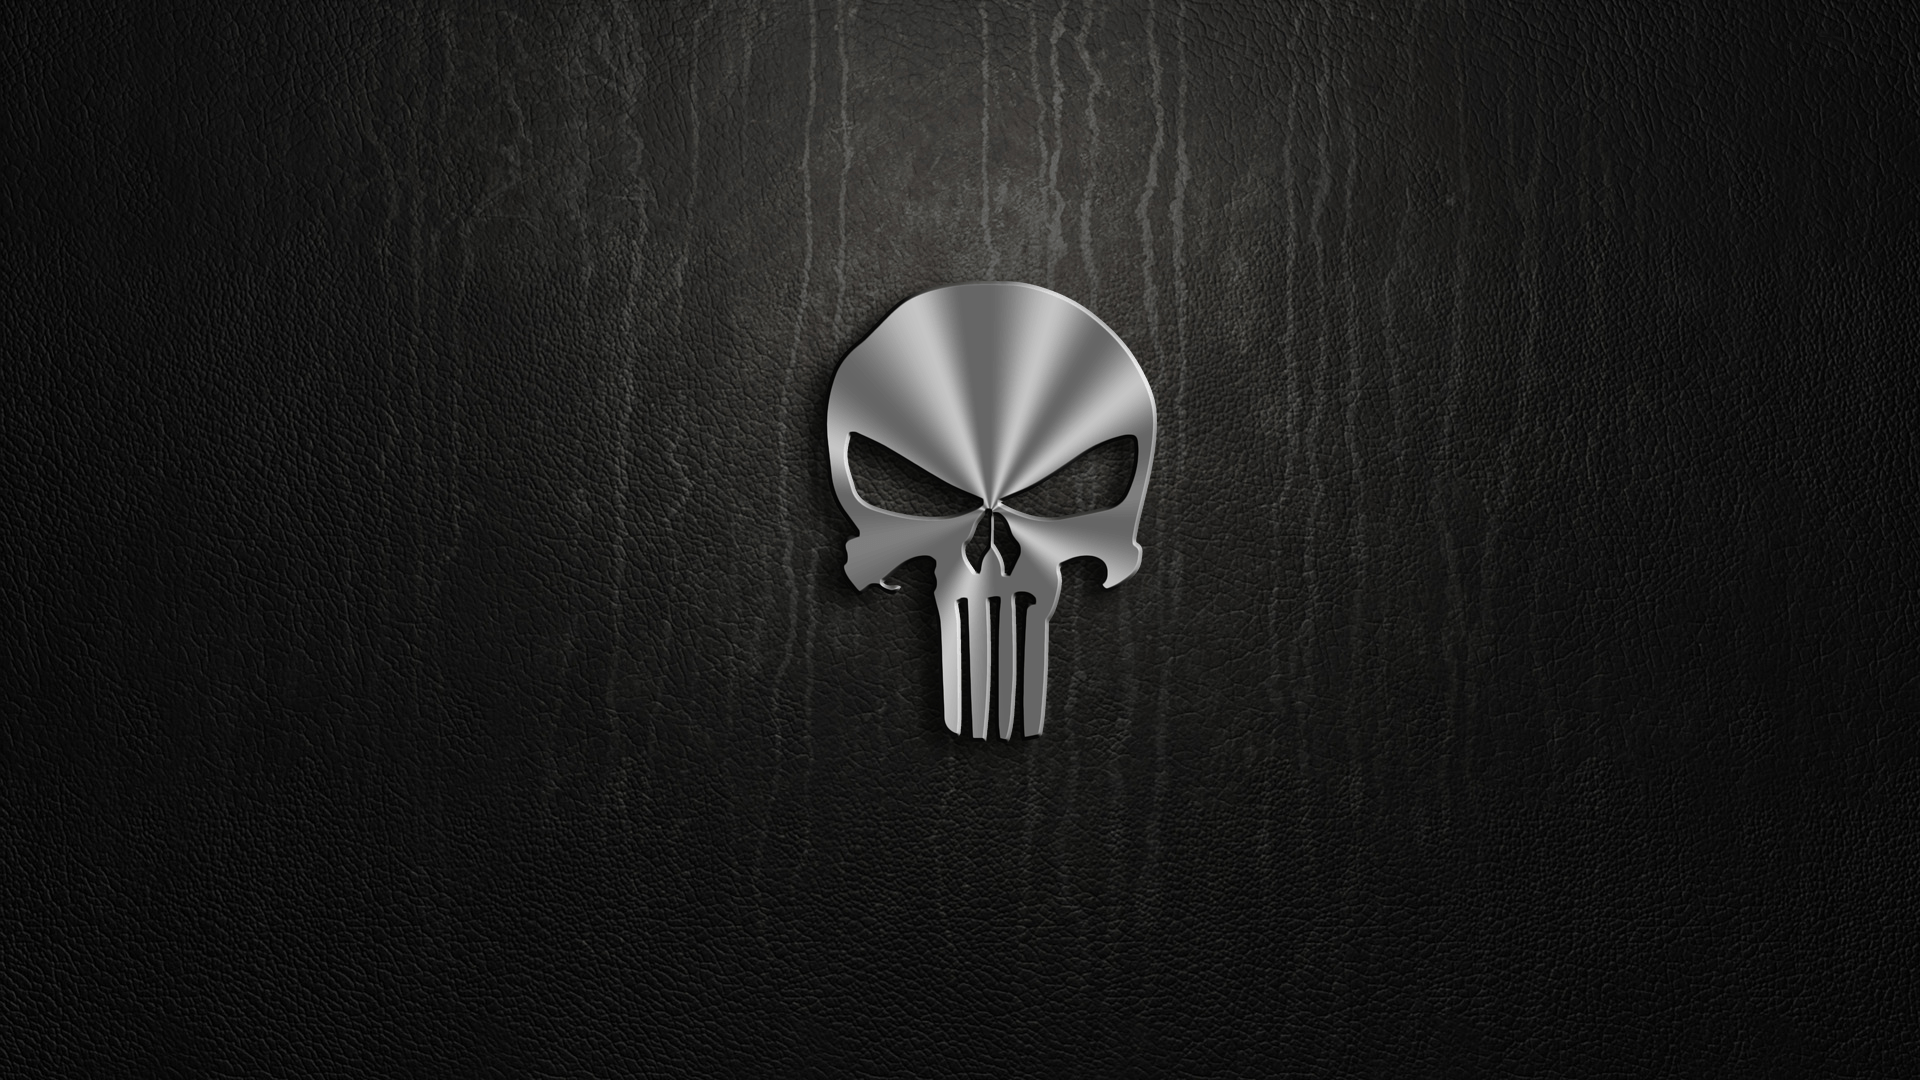 Punisher Vest Wallpaper